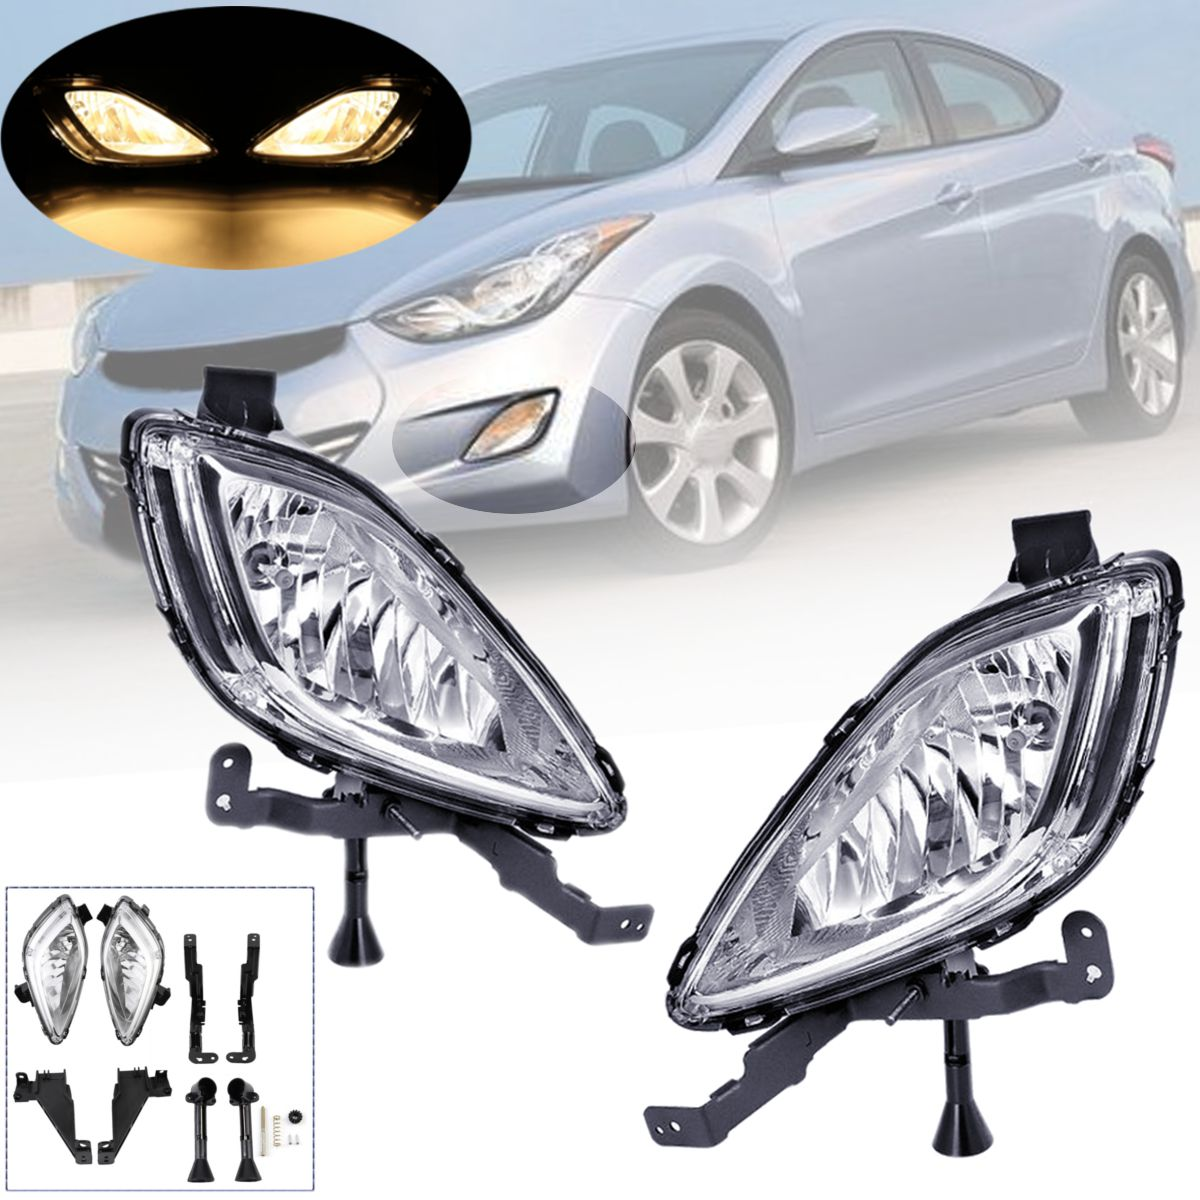 1 Pair 12V 3000K Amber Left Right Clear Front Bumper Fog Lights Lamps Daytime Running Lights For Hyundai Elantra 2011 2012 2013